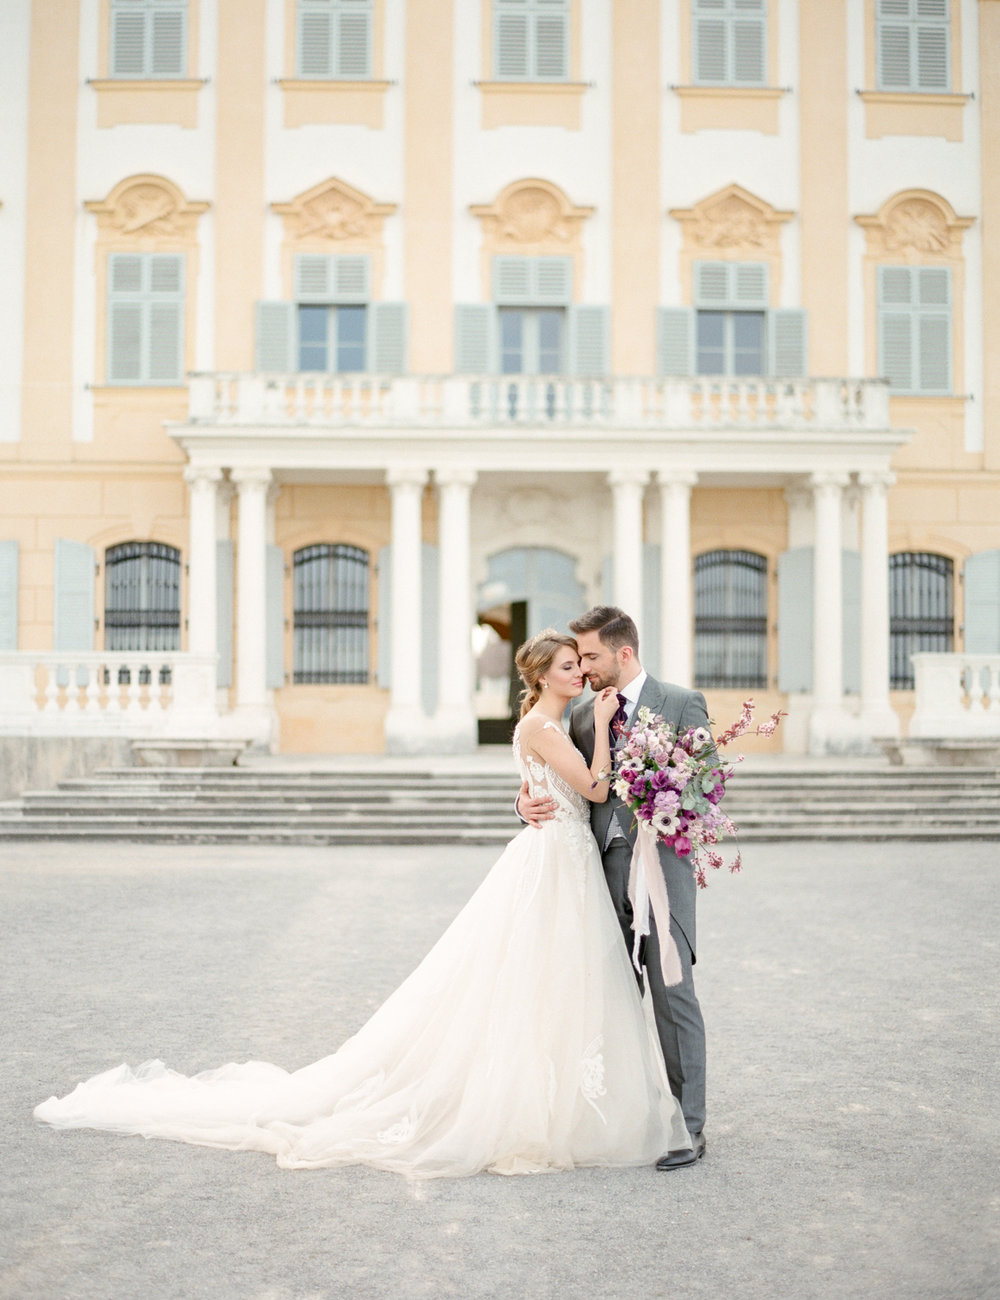 schlosshof wedding editorial vienna wedding photographer nikol bodnarova film wedding photographer191.JPG